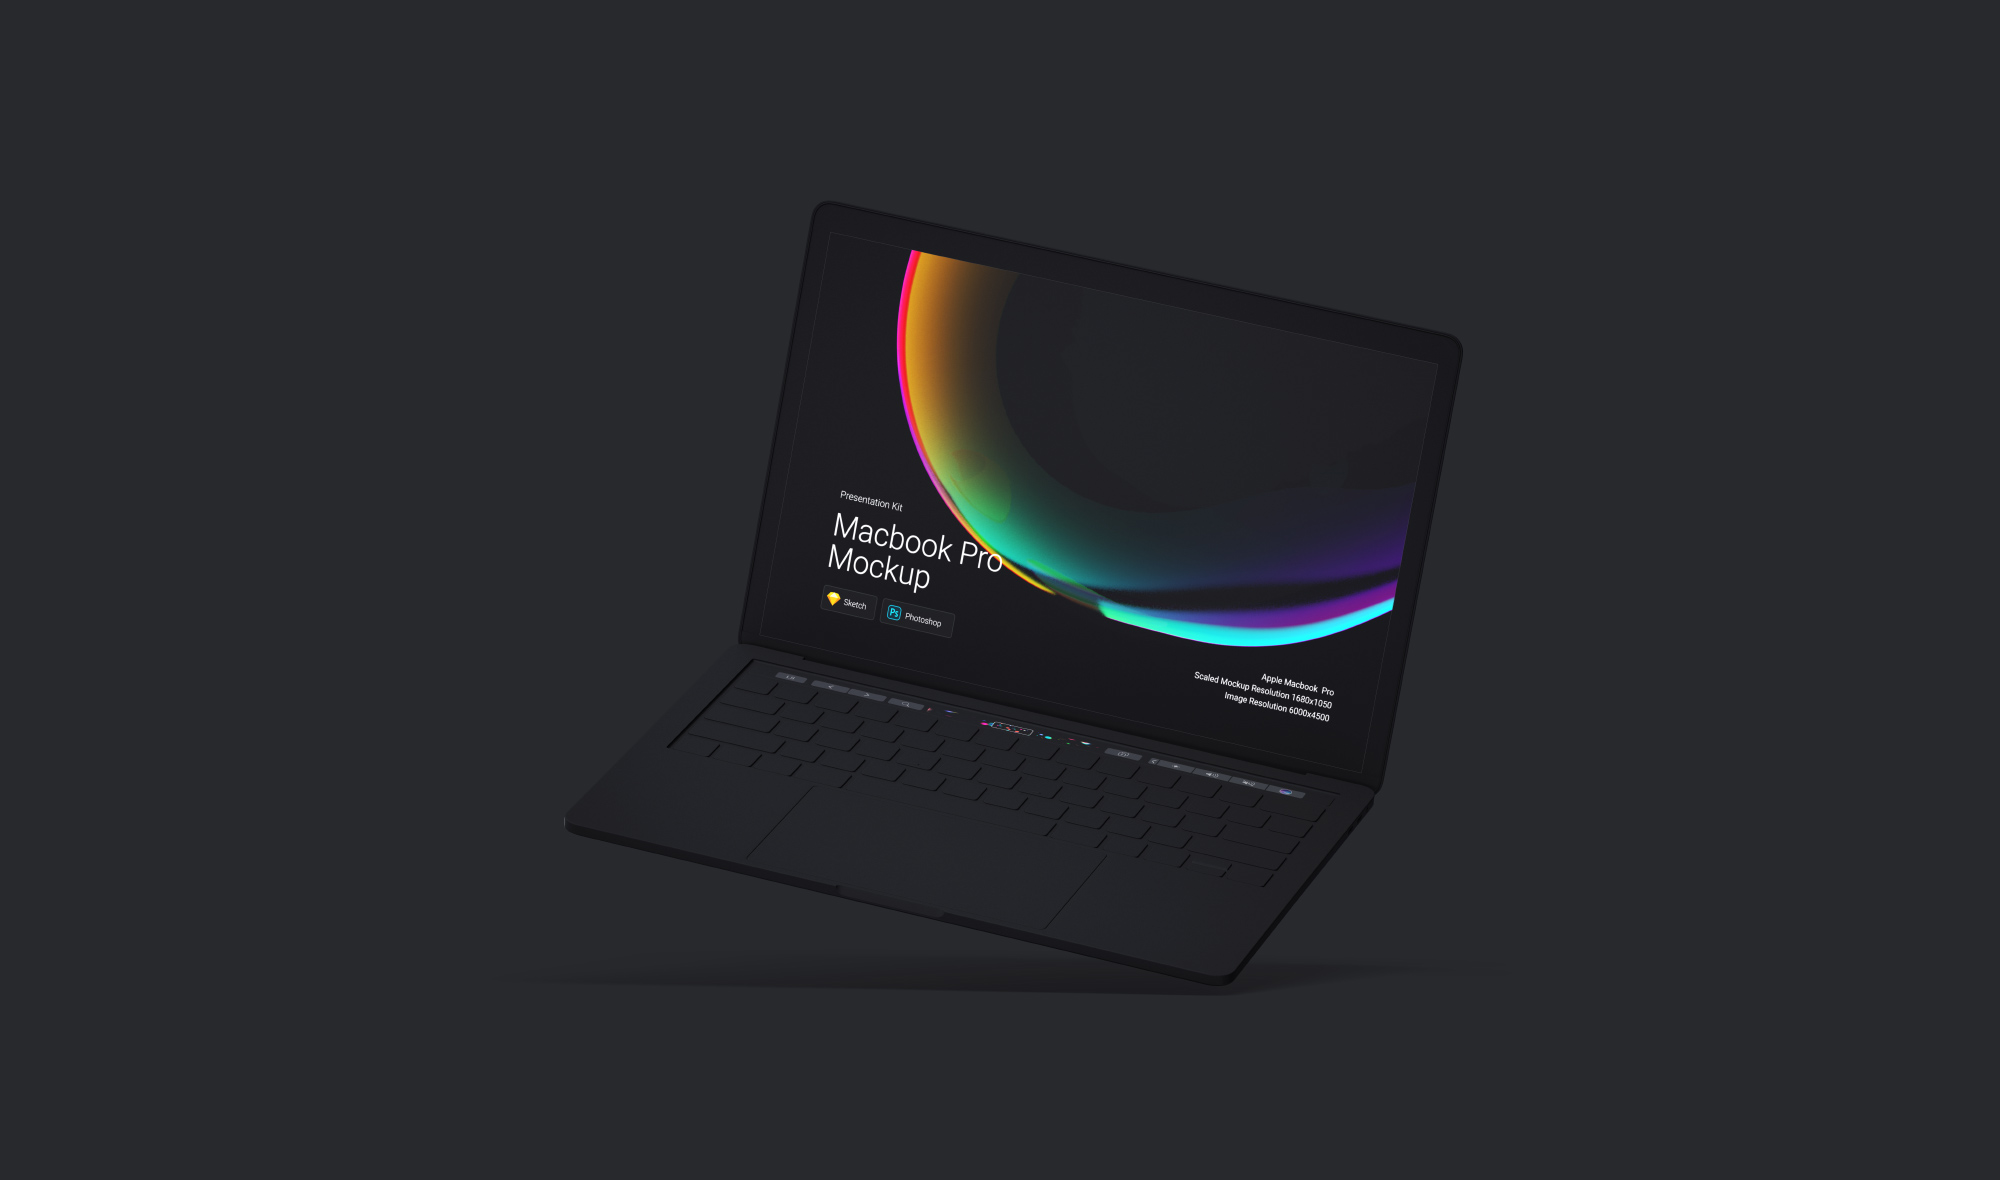 Download Macbook Macbook Pro Mockups for Sketch and Photoshop